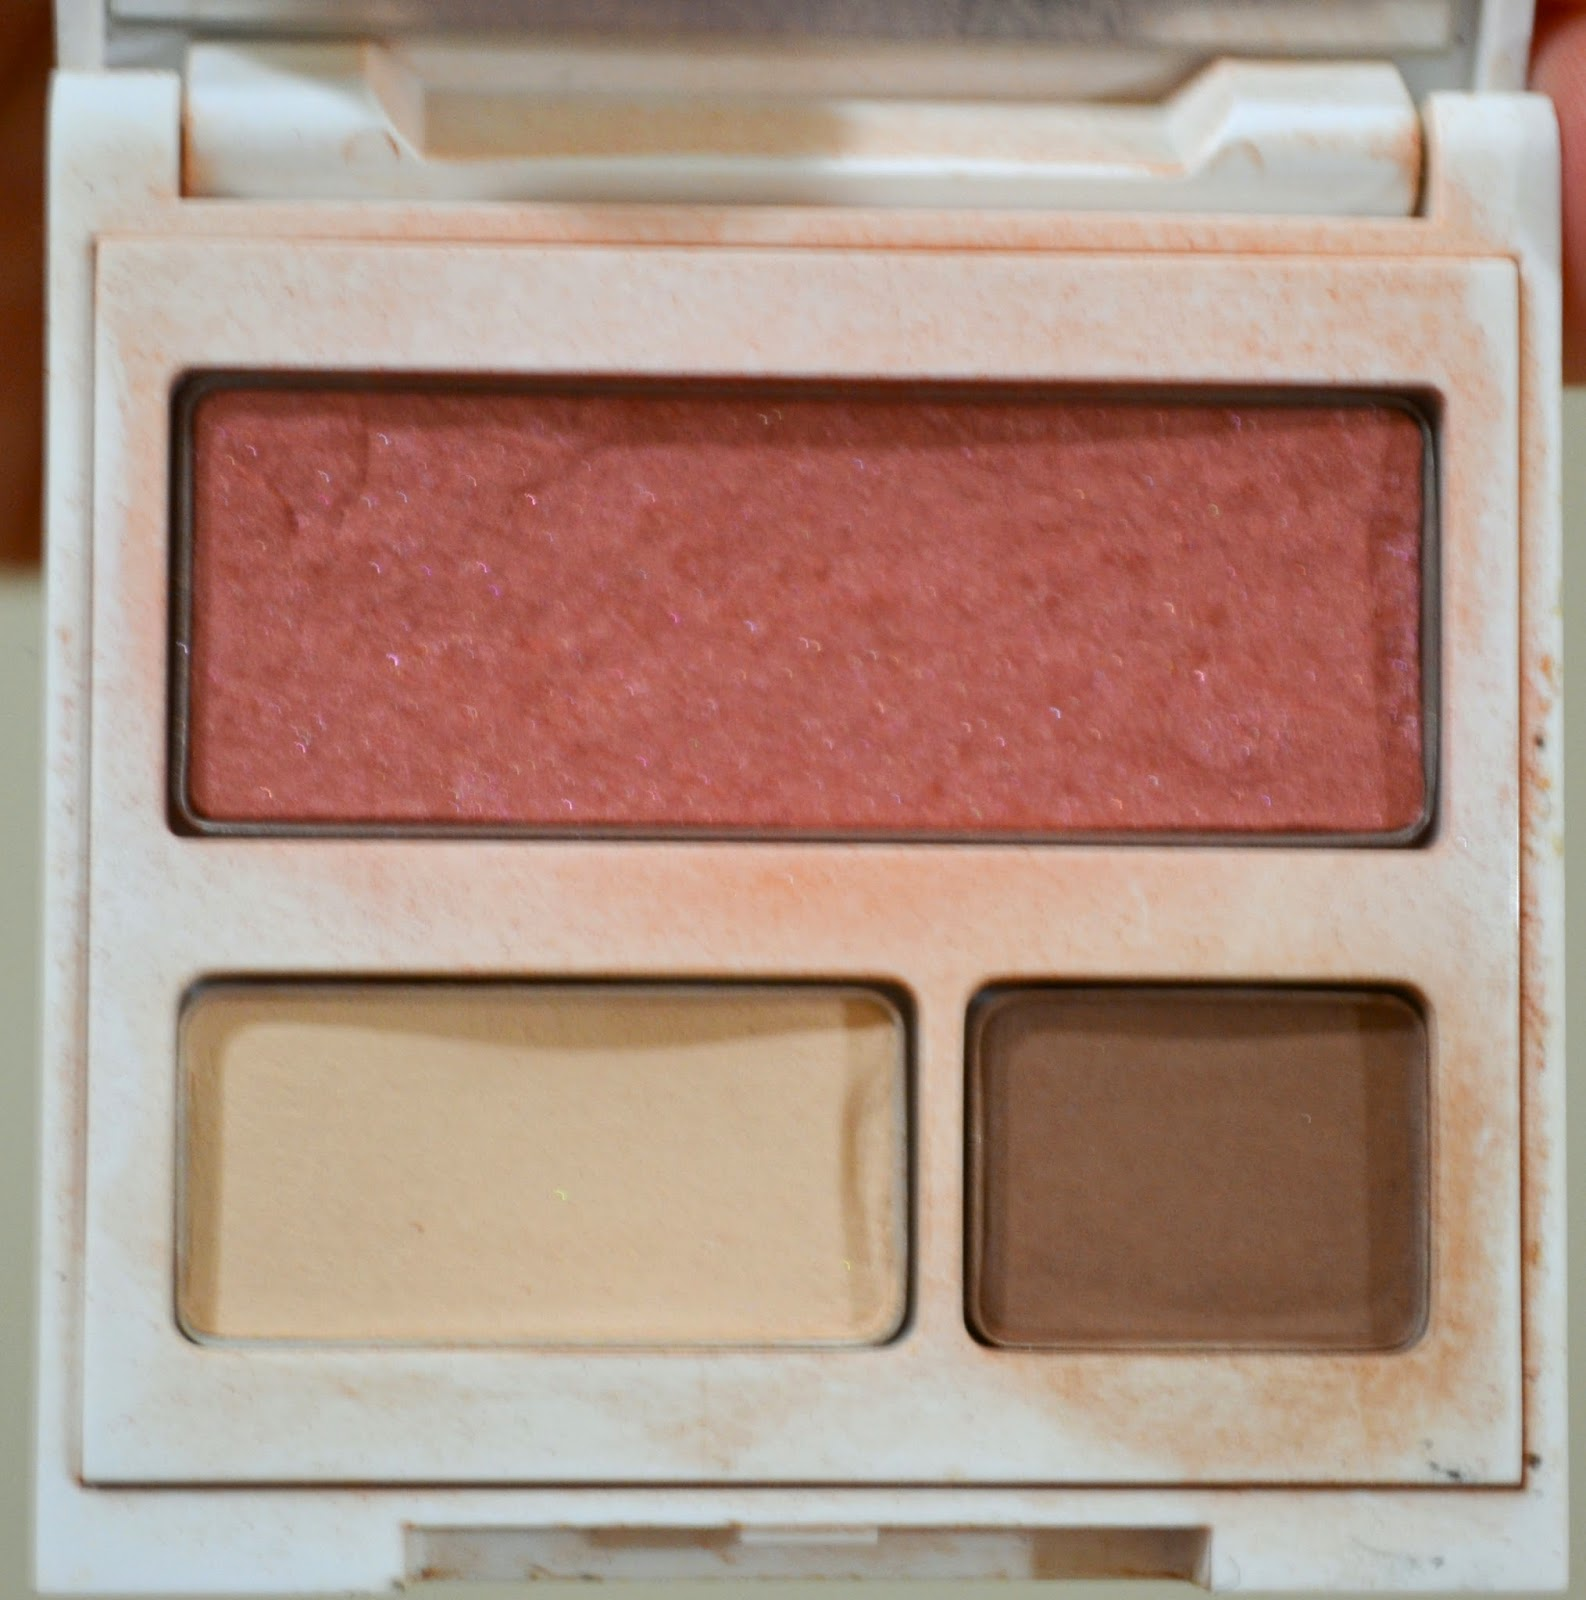 Clinique Blush in Sunset Glow